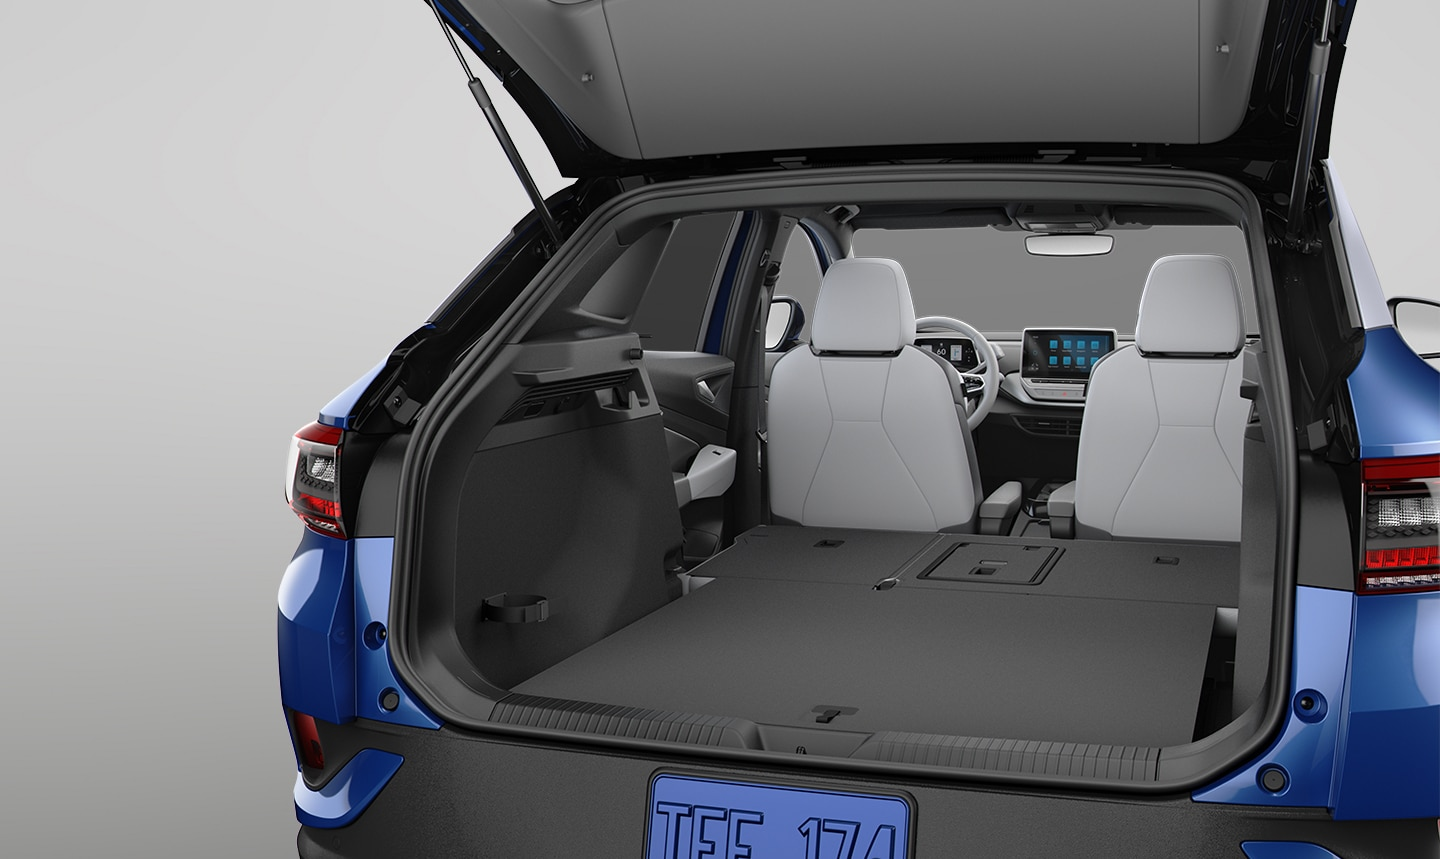 VW ID.4 60/40 split folding rear seats with up to 64.2 ft³ of rear cargo space